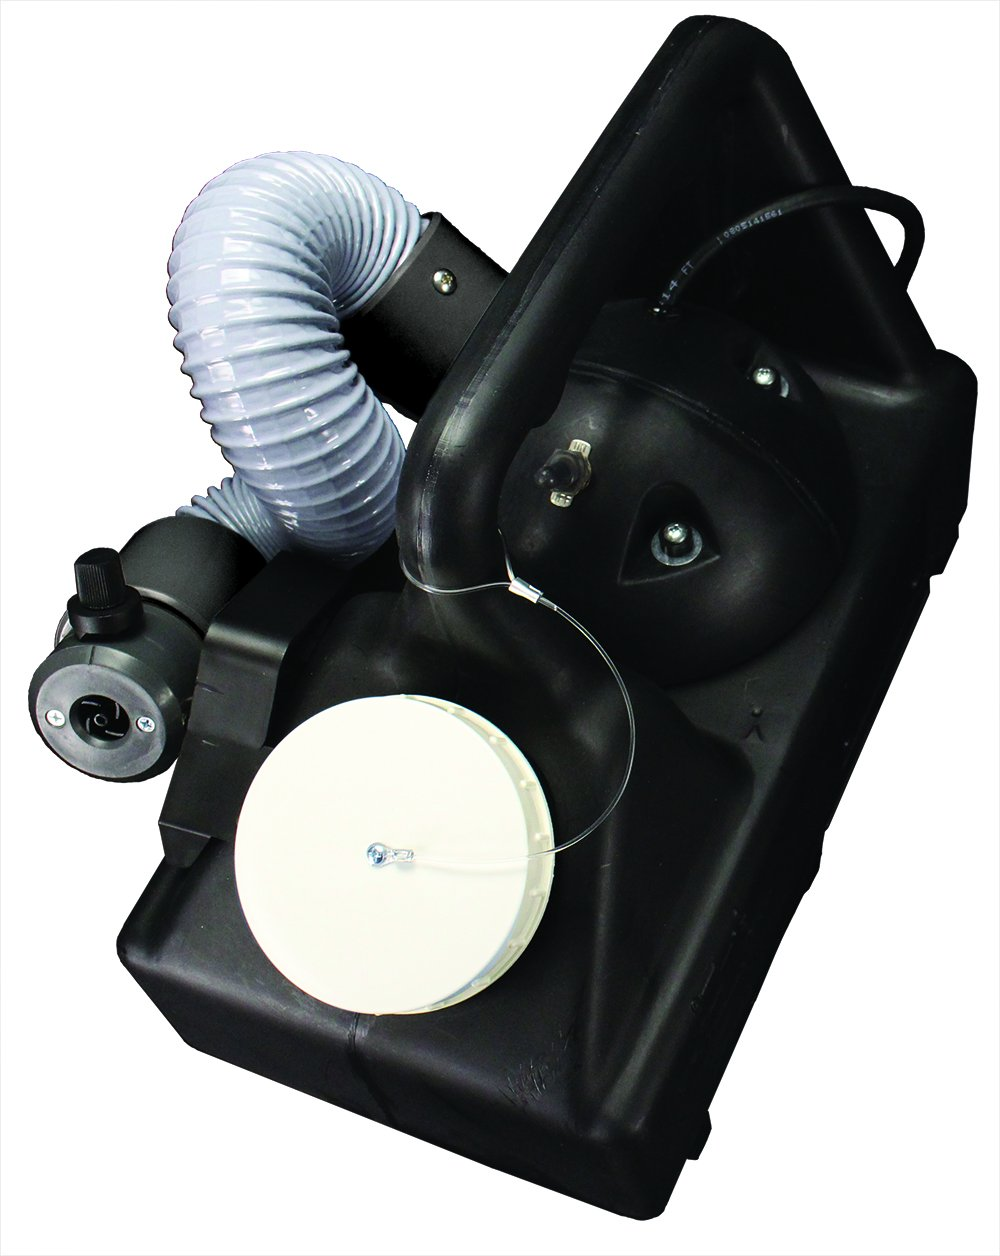 Smith Performance Sprayers Professional Pest Control Electric Cold Fogger by Smith Performance Sprayers (Image #2)